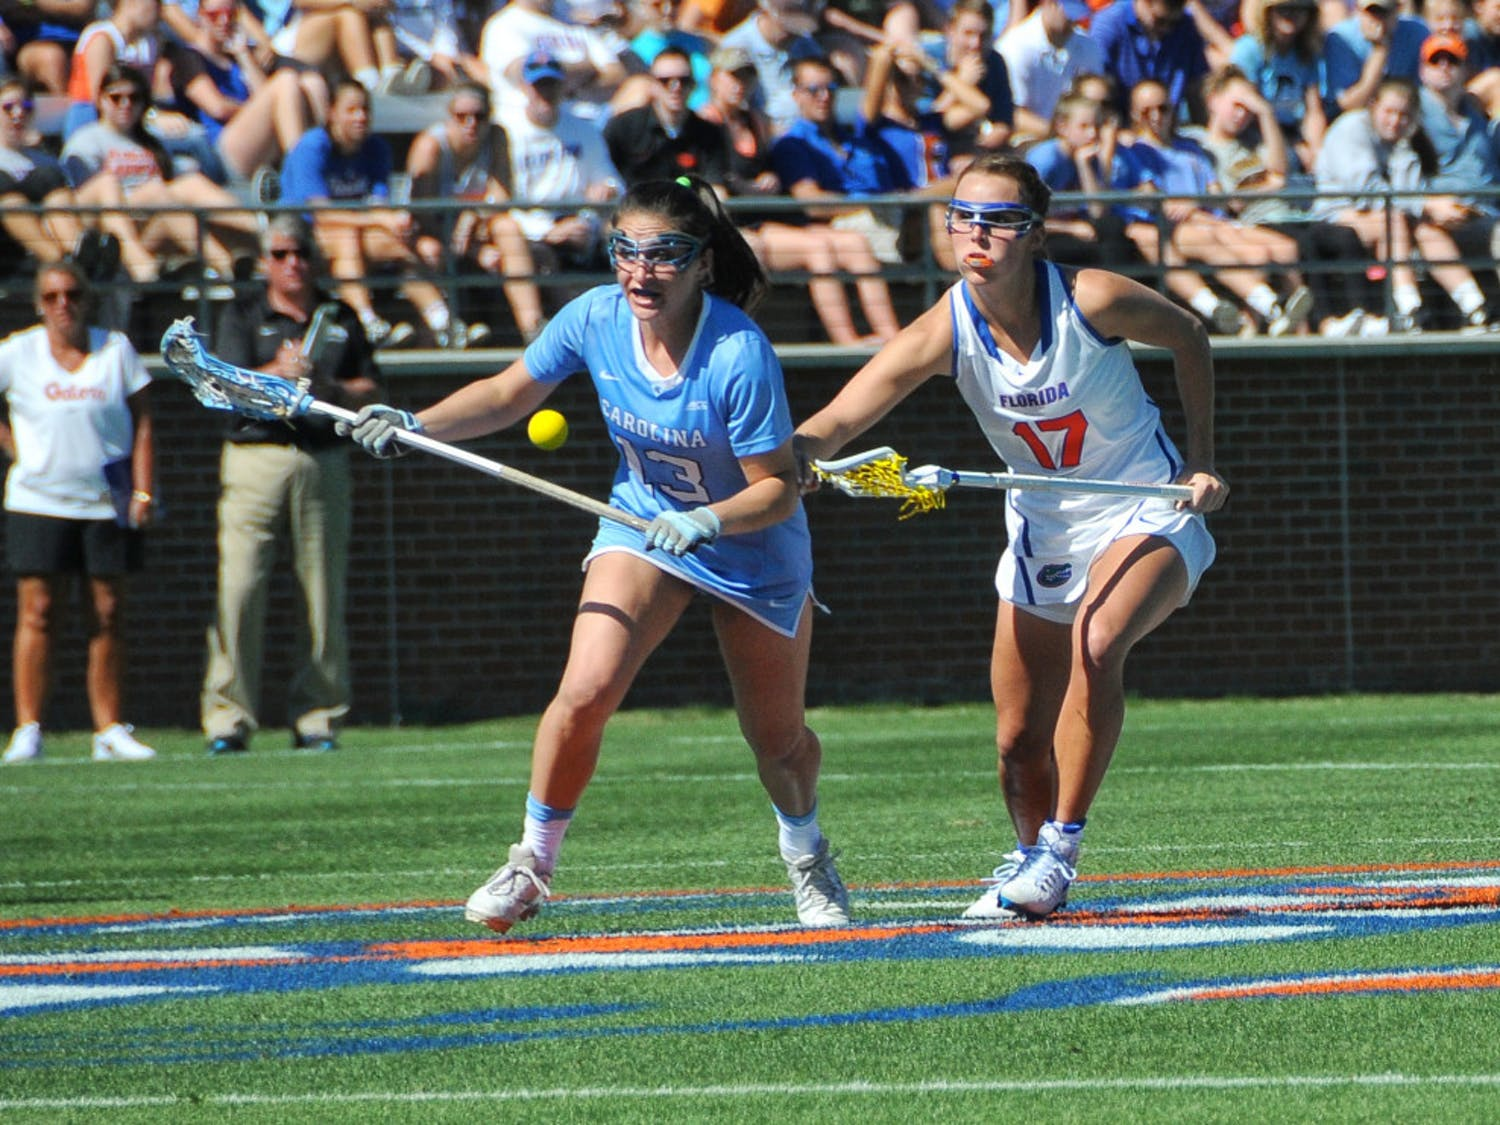 UF attacker Mollie Stevens fights off a North Carolina player during Florida's 13-10 loss to the Tar Heels on Feb. 11, 2017, at Donald R. Dizney Stadium.